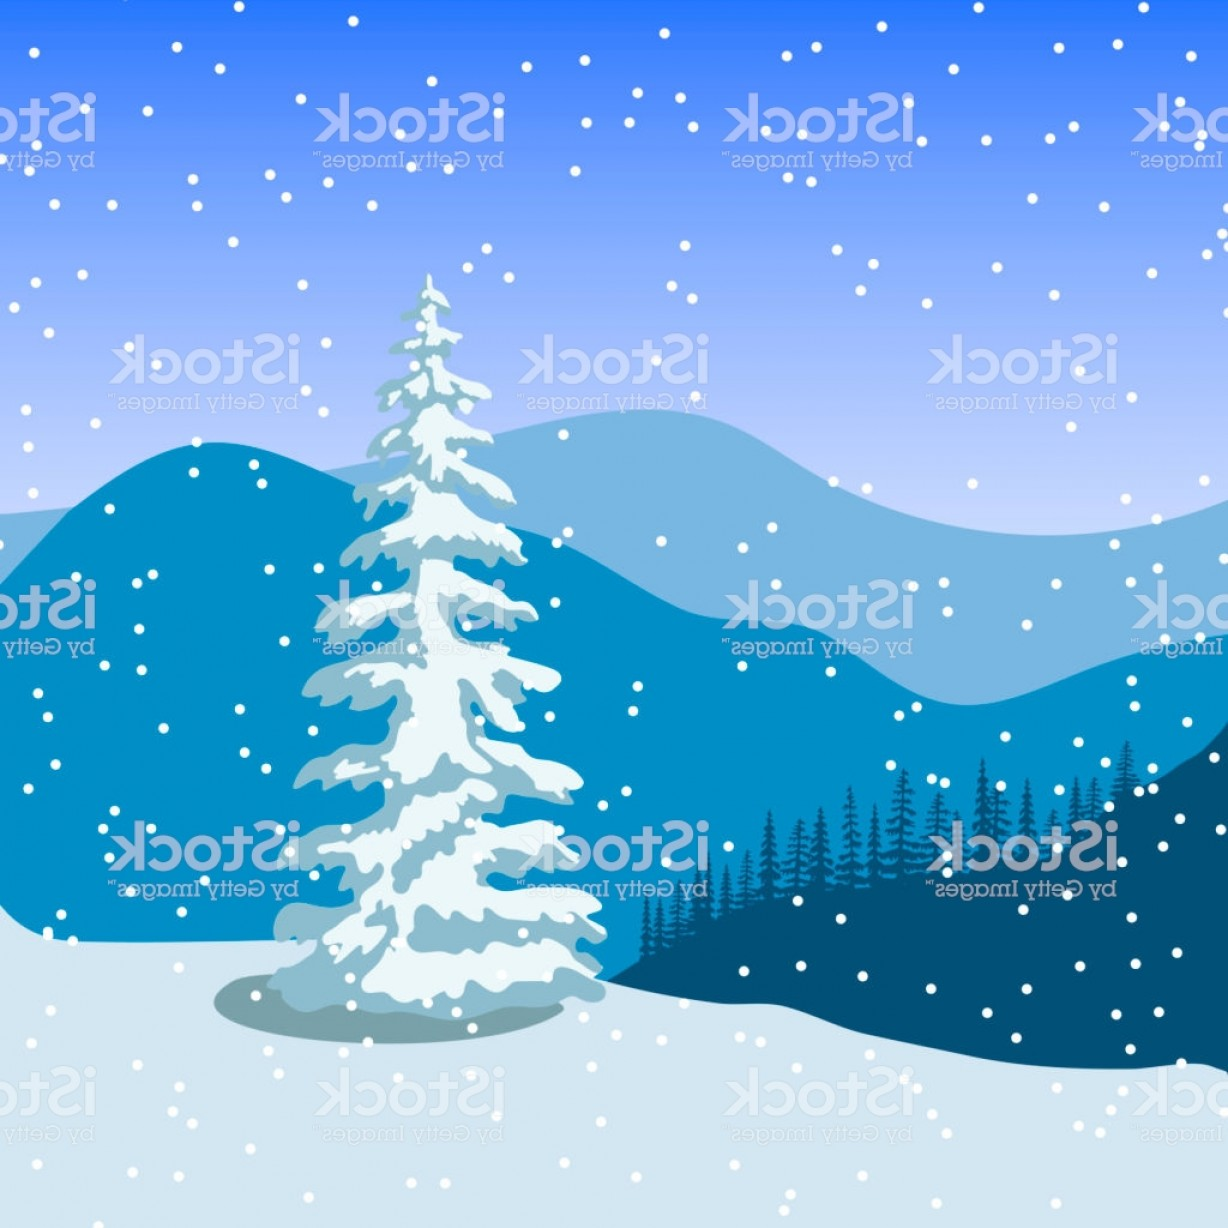 Vector Art Mountains Trees Colorado: Winter Christmas Landscape With Silhouettes Of Mountains Snowfall And Forest At Gm